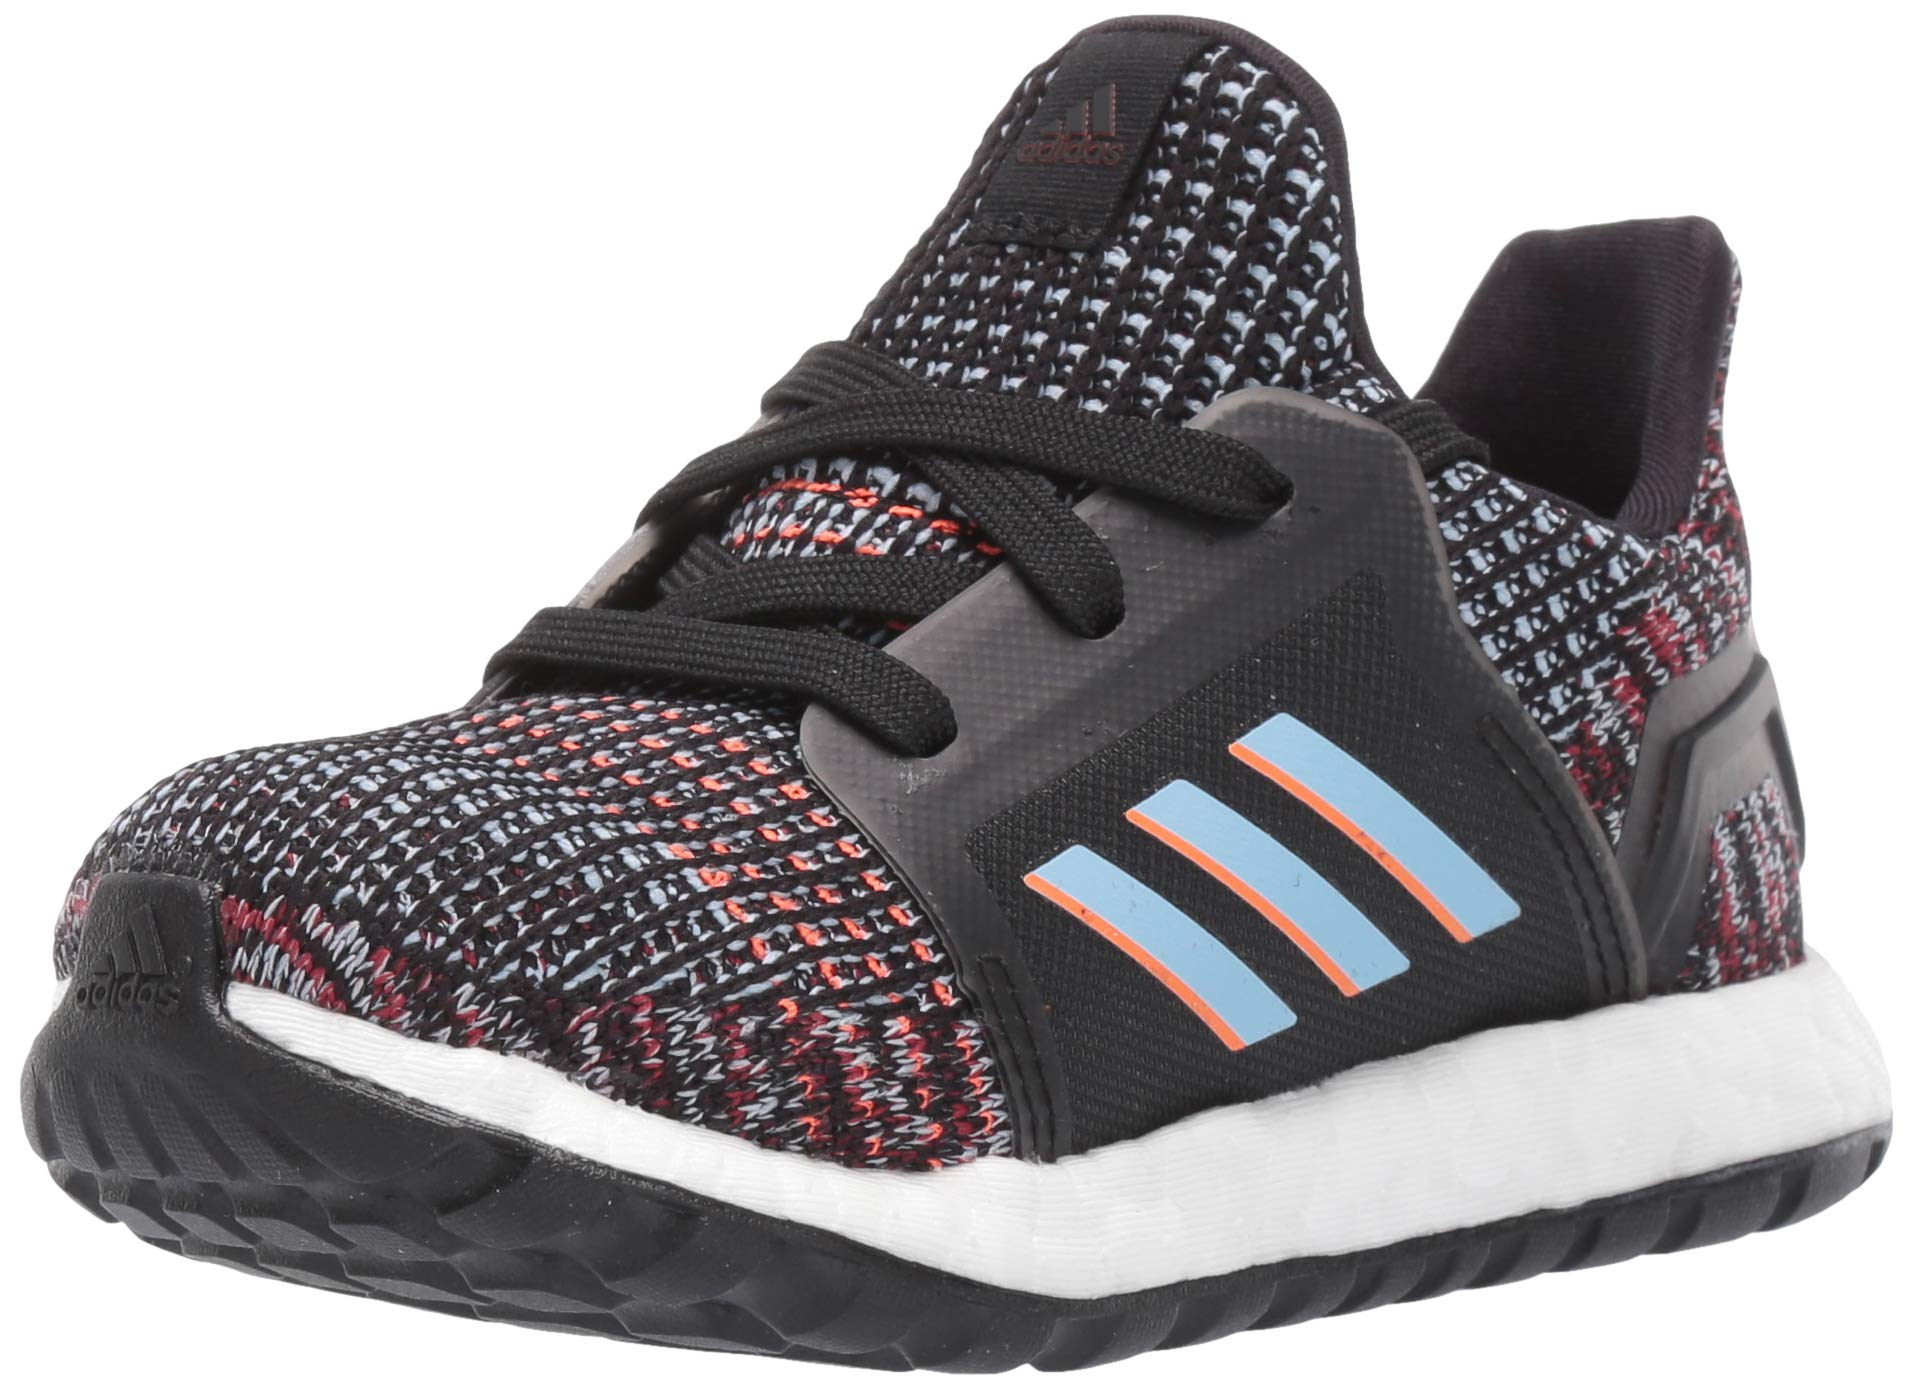 adidas Baby Ultraboost 19 Running Shoe, Black/Glow Blue/hi-res Coral, 6K M US Toddler by adidas